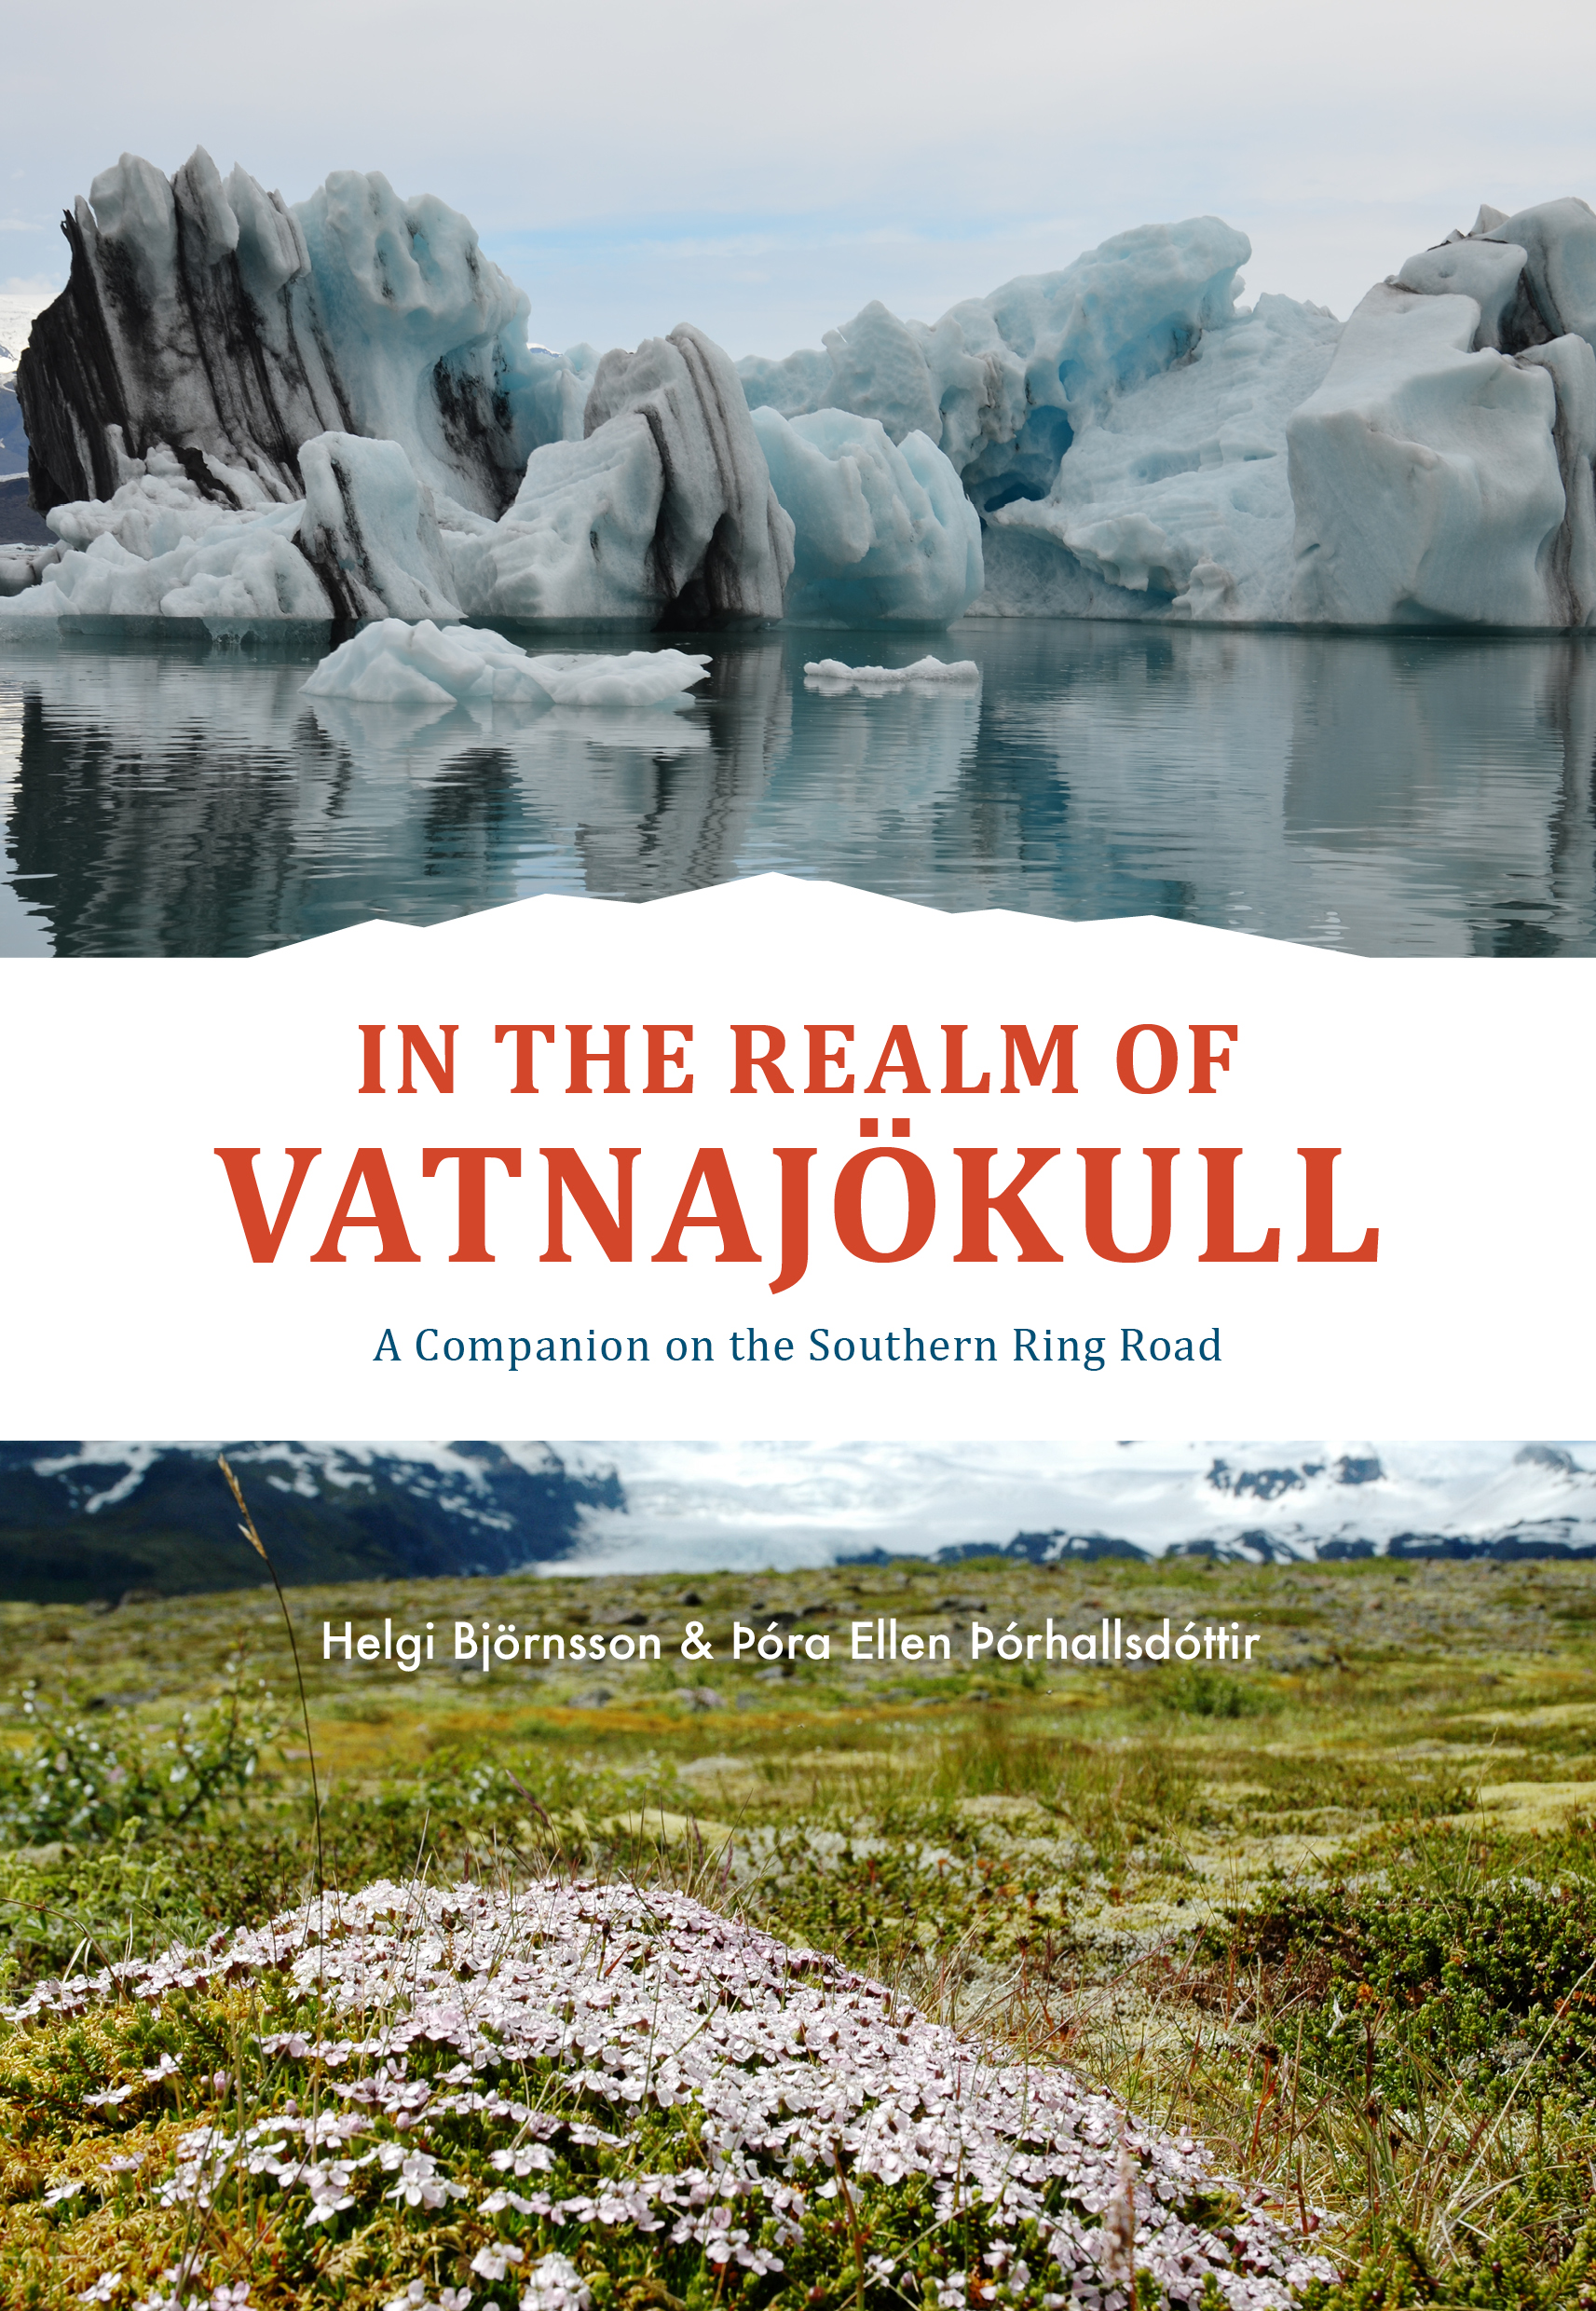 In the realm of Vatnajökull – A companion on the Southern Ring Road